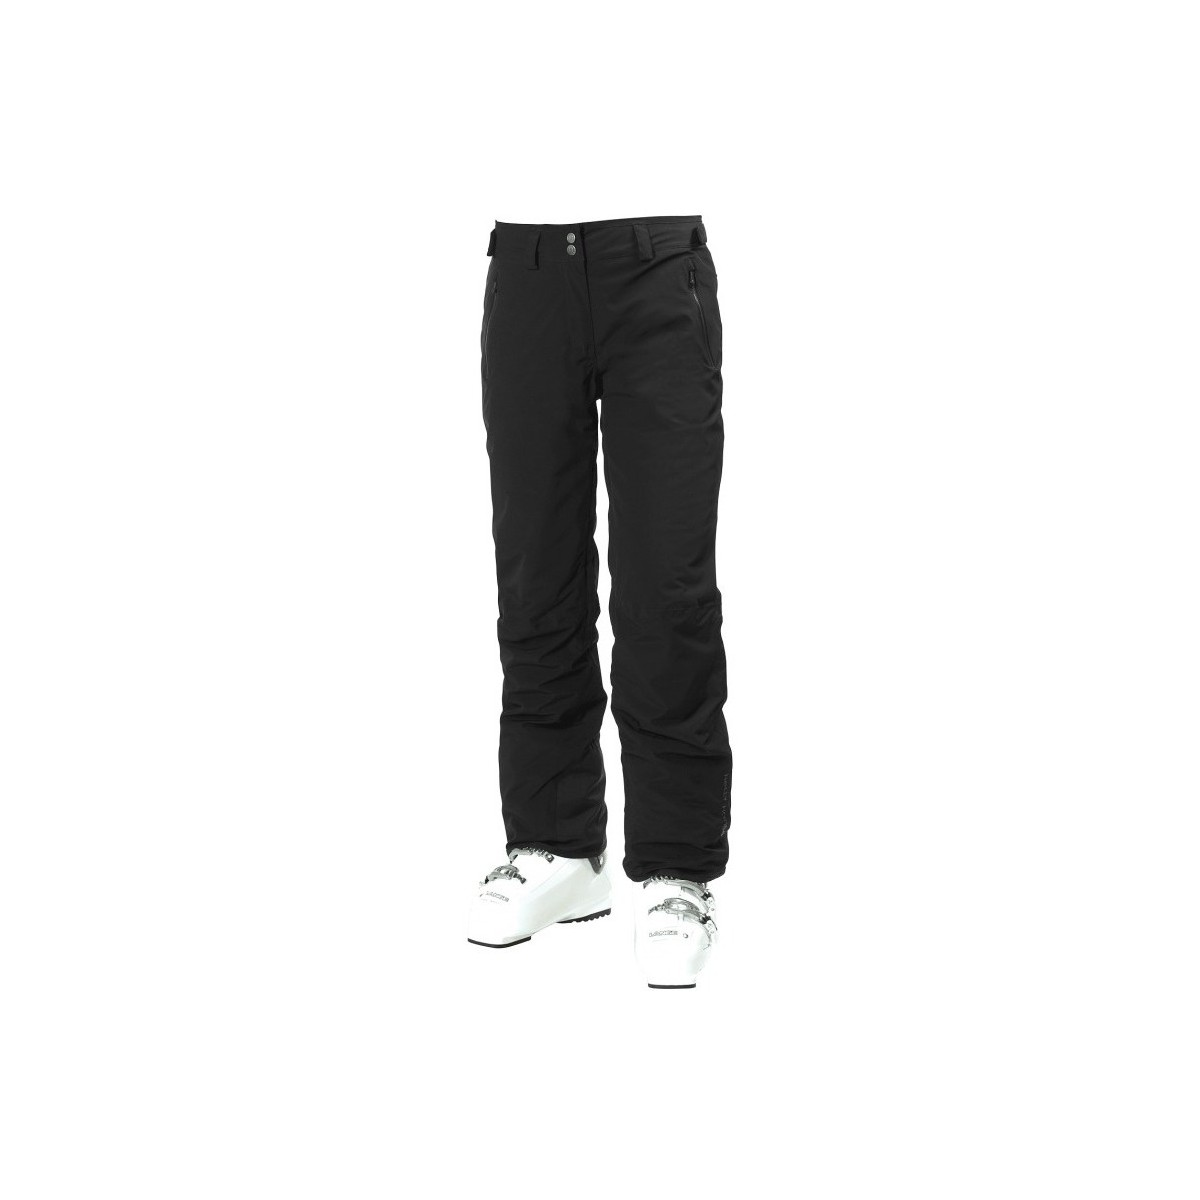 Helly Hansen W LEGENDARY PANT BLACK PANTALON SKI FEMME BLACK